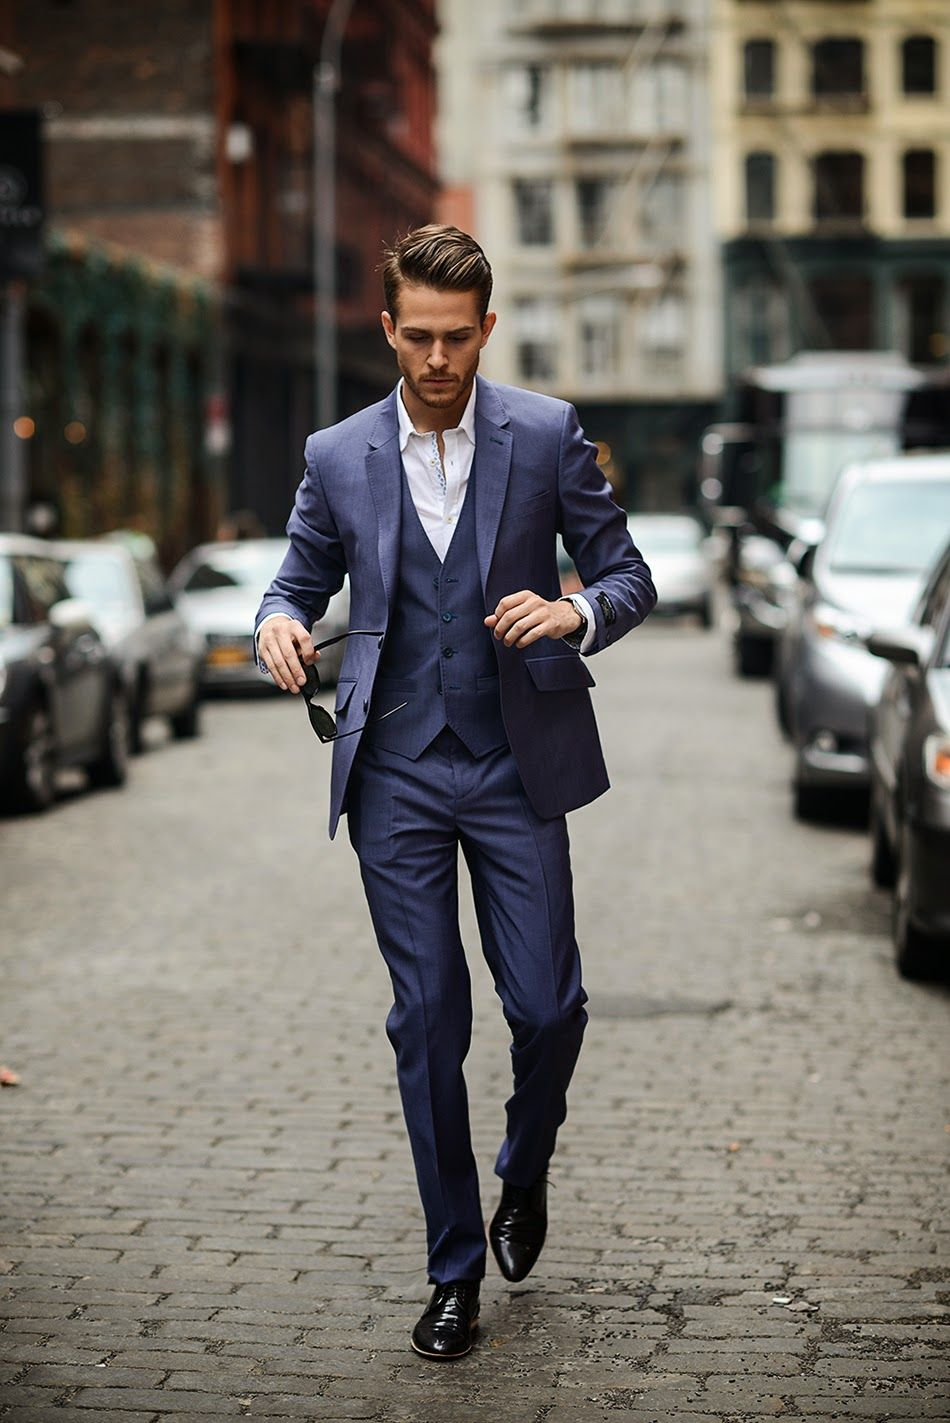 Image result for man in suit street style